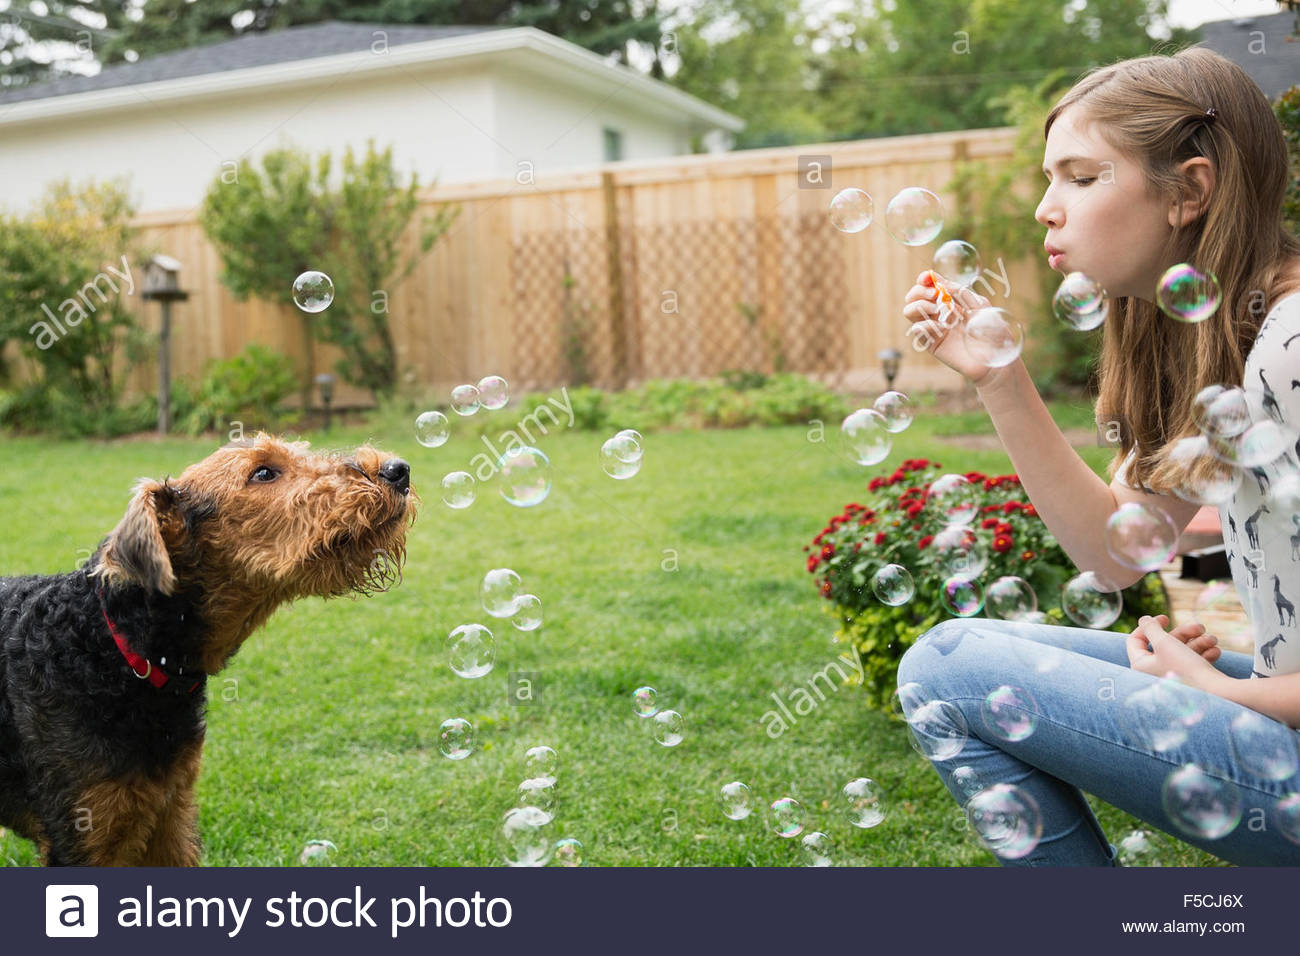 Curious dog watching girl blowing bubbles in backyard - Stock Image